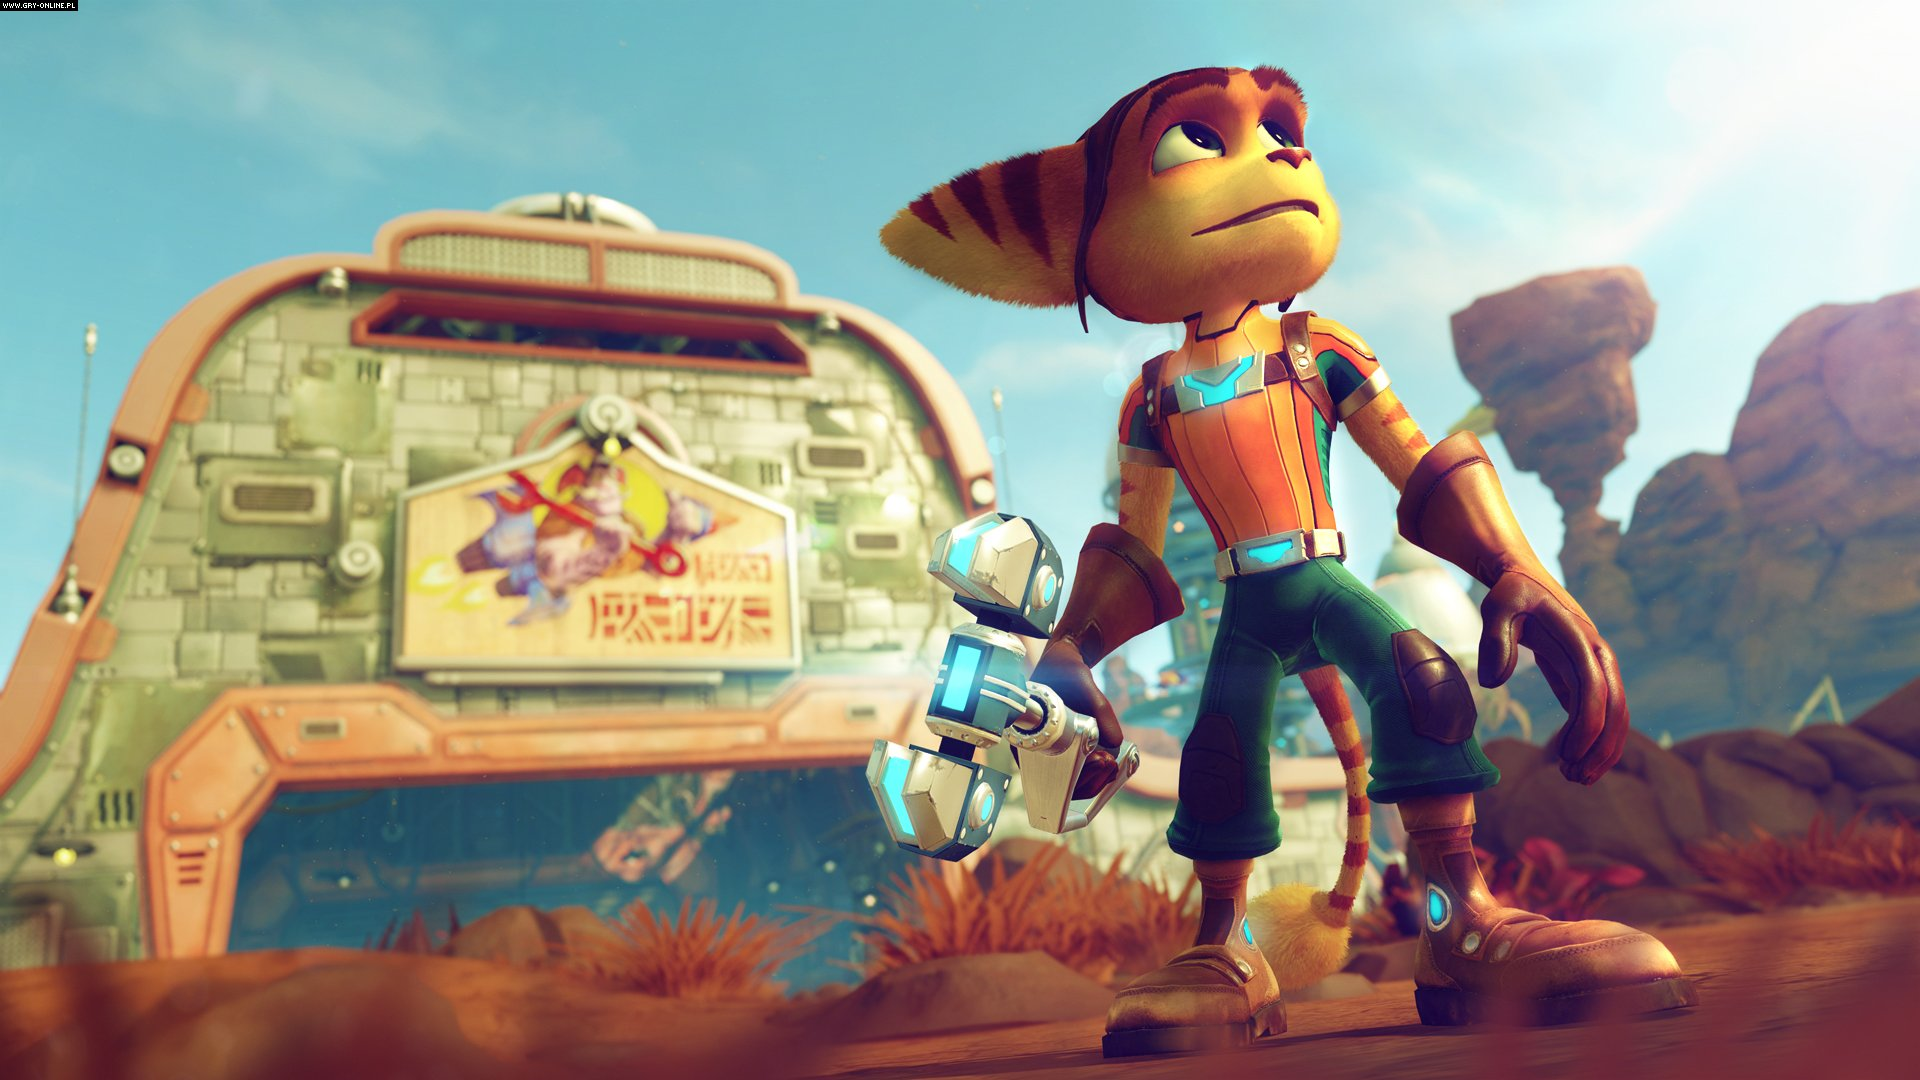 Ratchet & Clank PS4 Games Image 14/15, Insomniac Games, Sony Interactive Entertainment